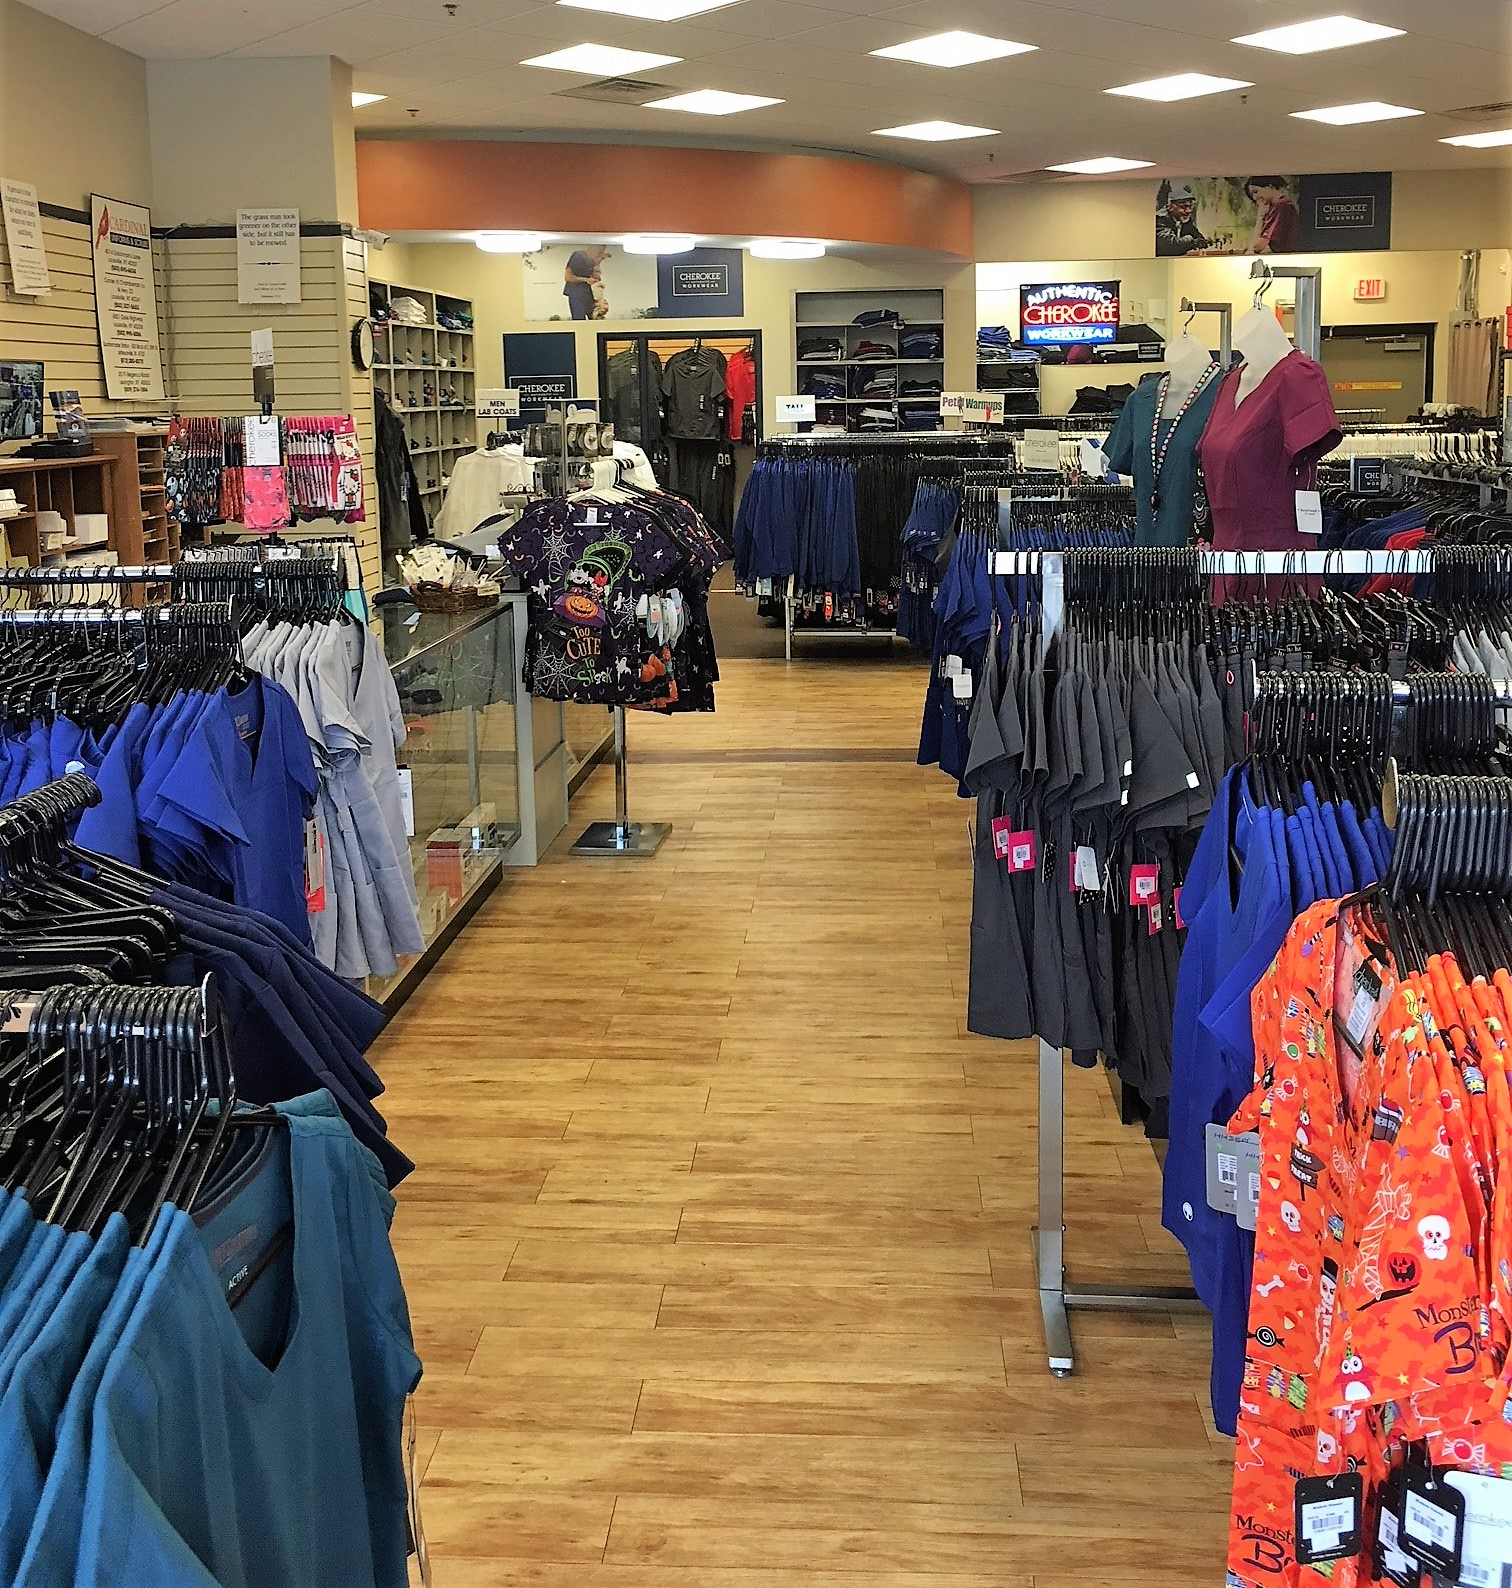 Chamberlain Lane/Highway 22 Cardinal Uniforms & Scrubs Overview from front